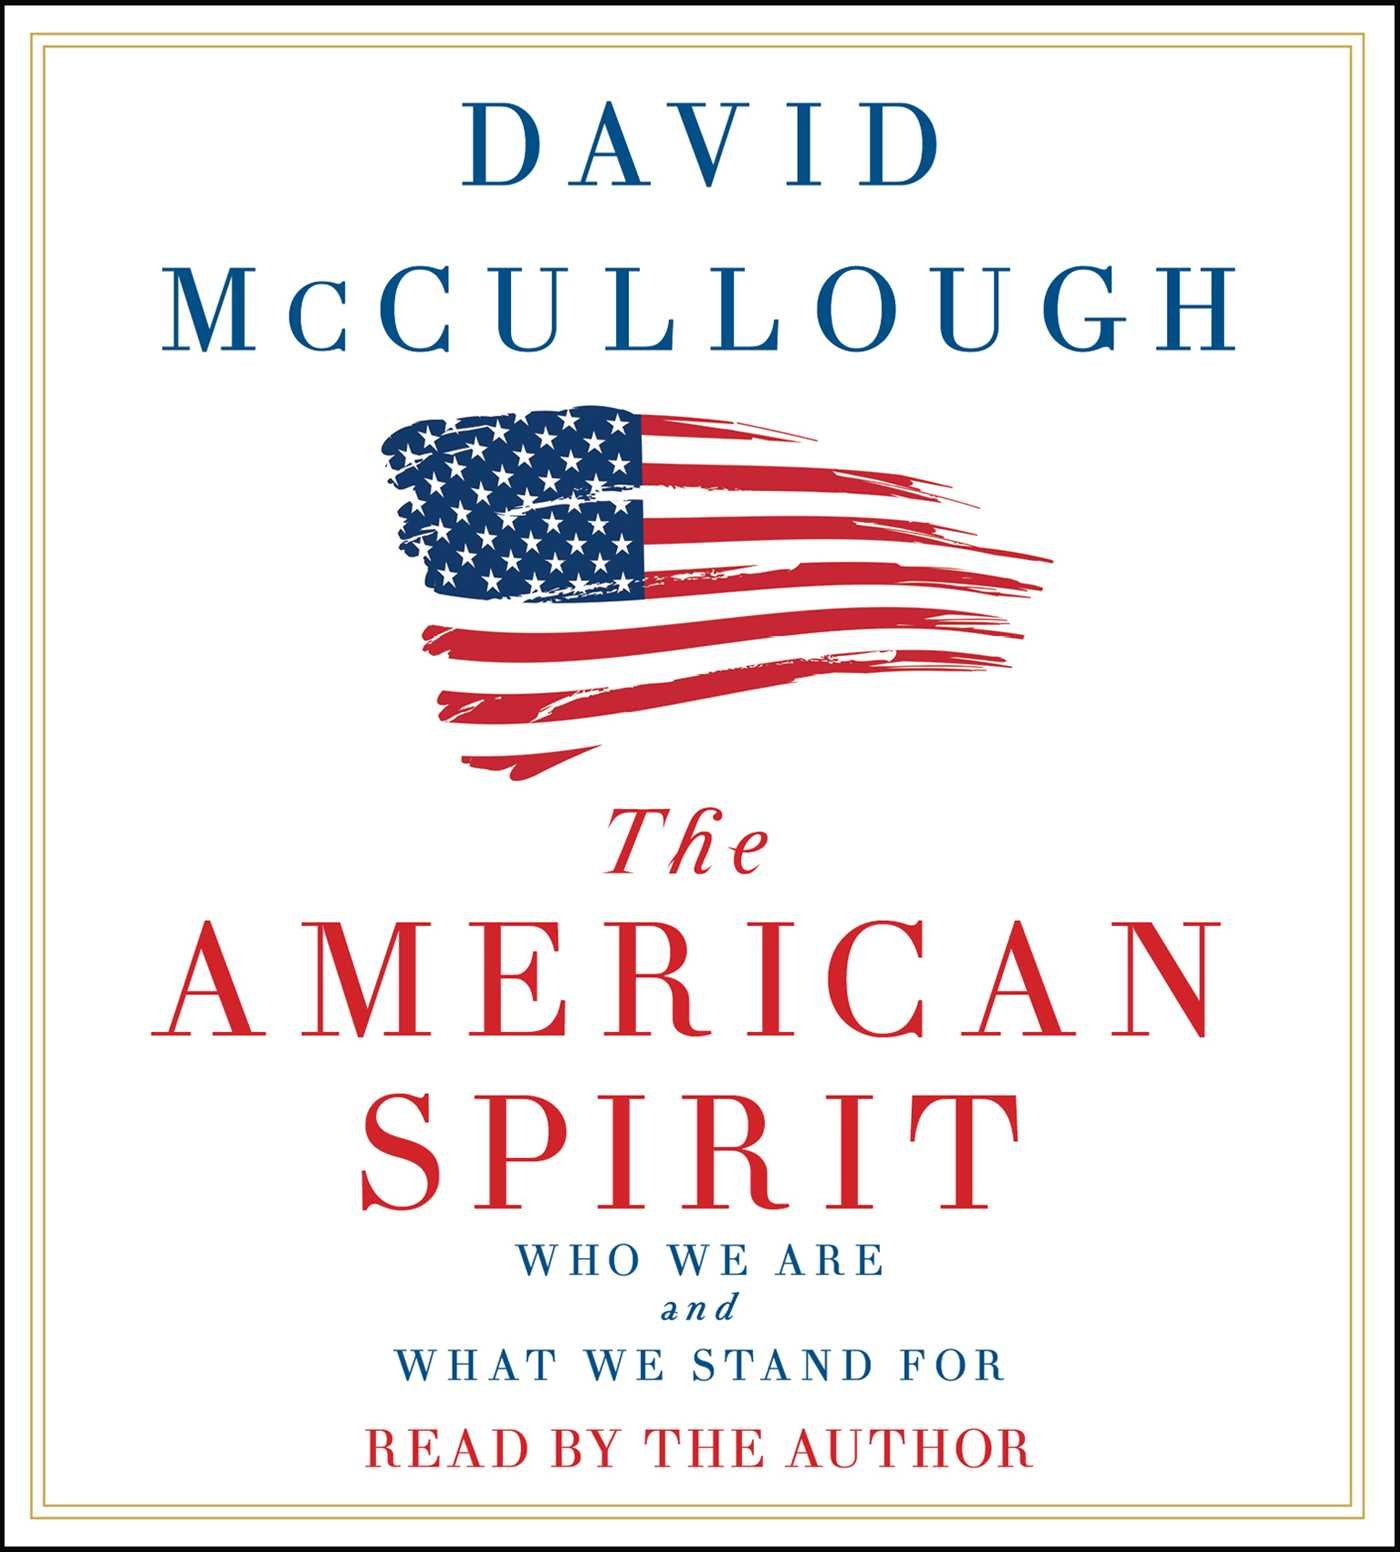 The American Spirit: David Mccullough: 9781508238706: Amazon: Books